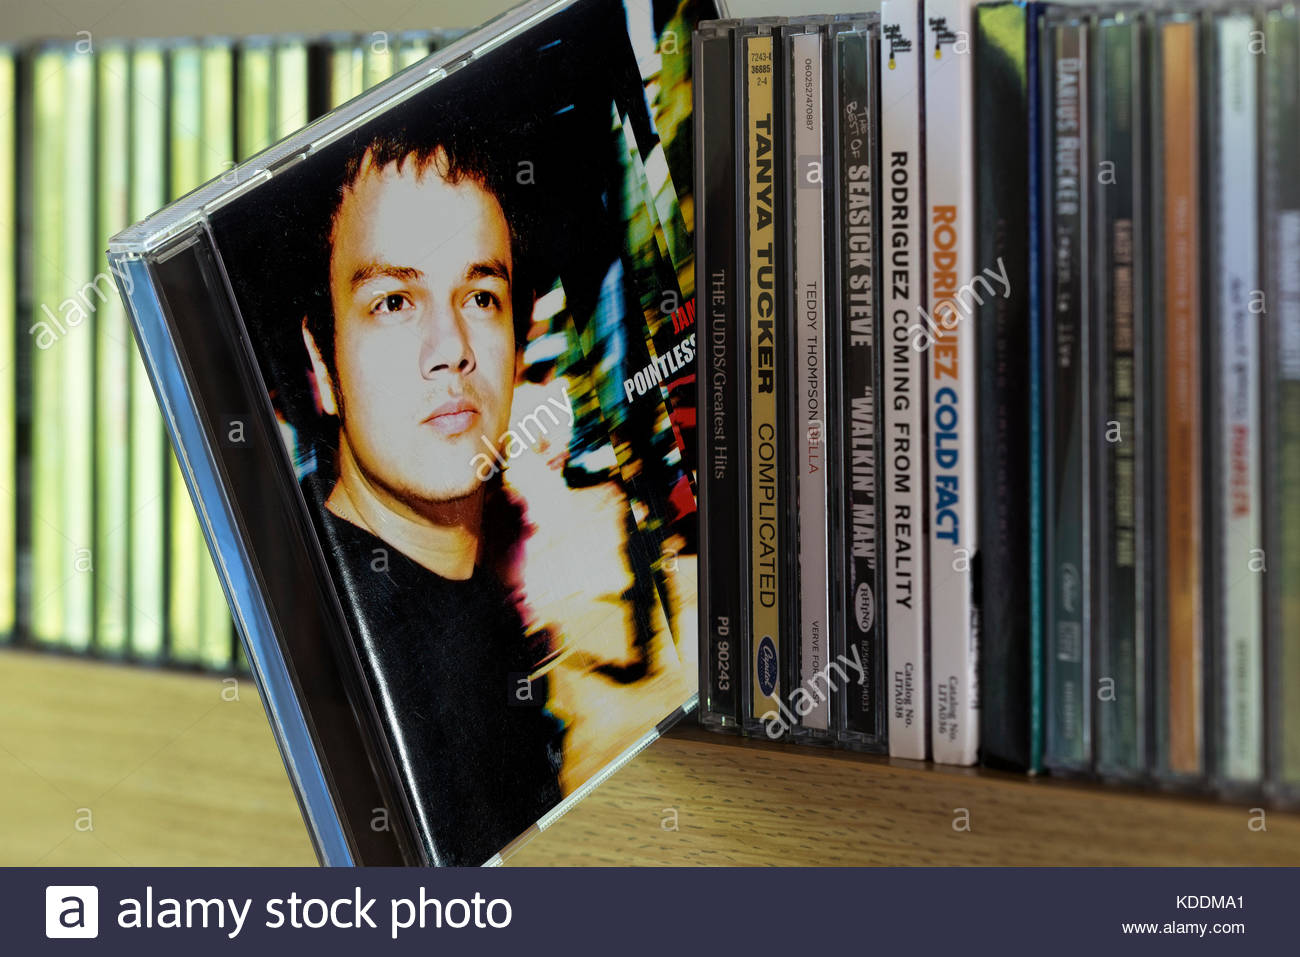 Pointless Nostalgic, Jamie Cullum CD pulled out from among other CD's on a shelf, Dorset, England - Stock Image